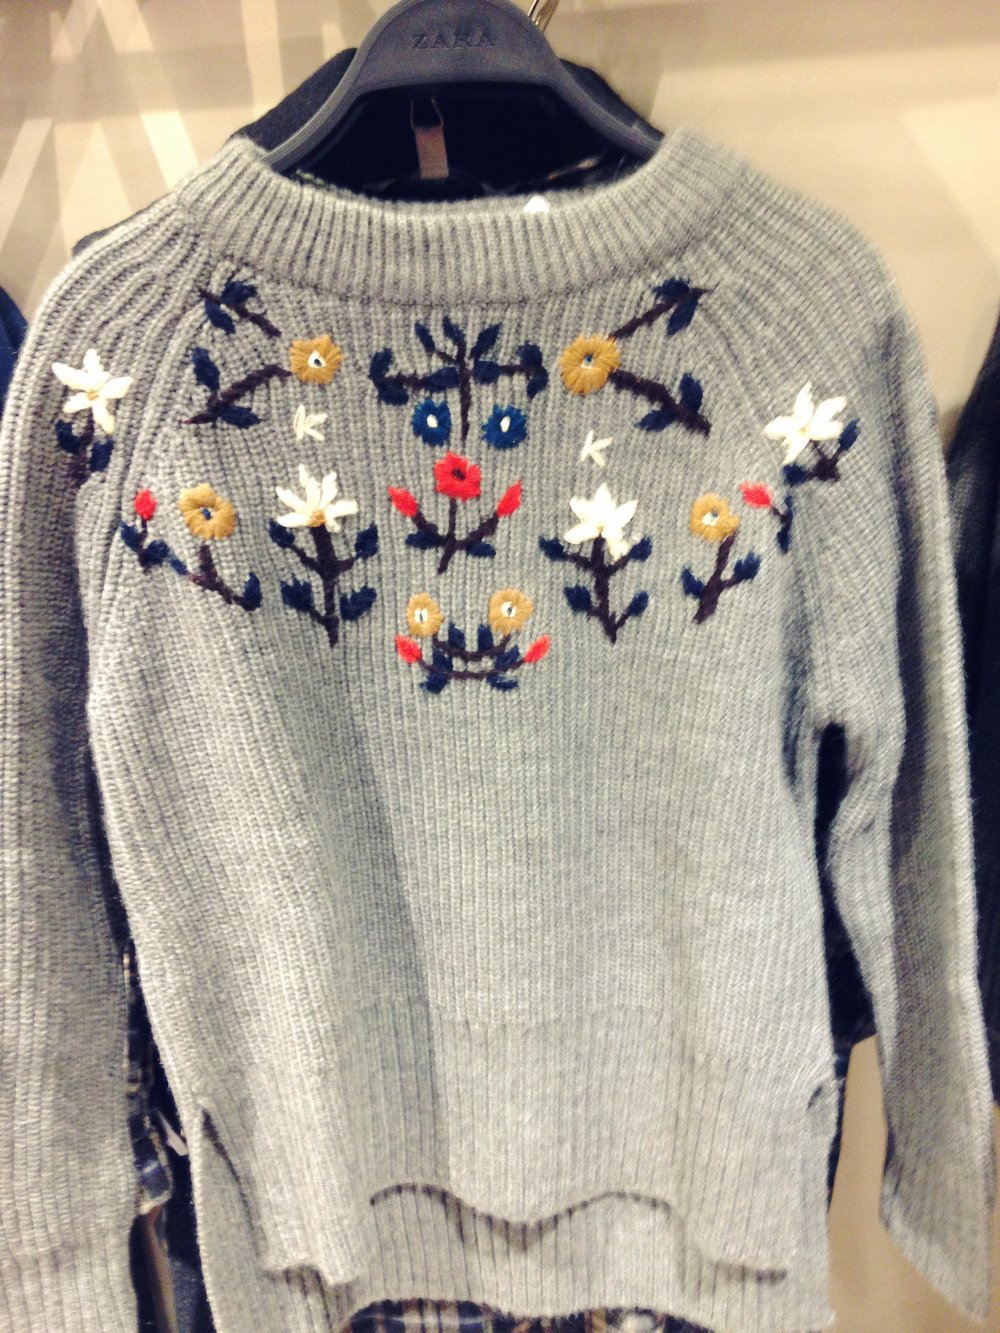 Zara knit. Big ribbed grey jumper with lovely embroidered flower detail. €49.99